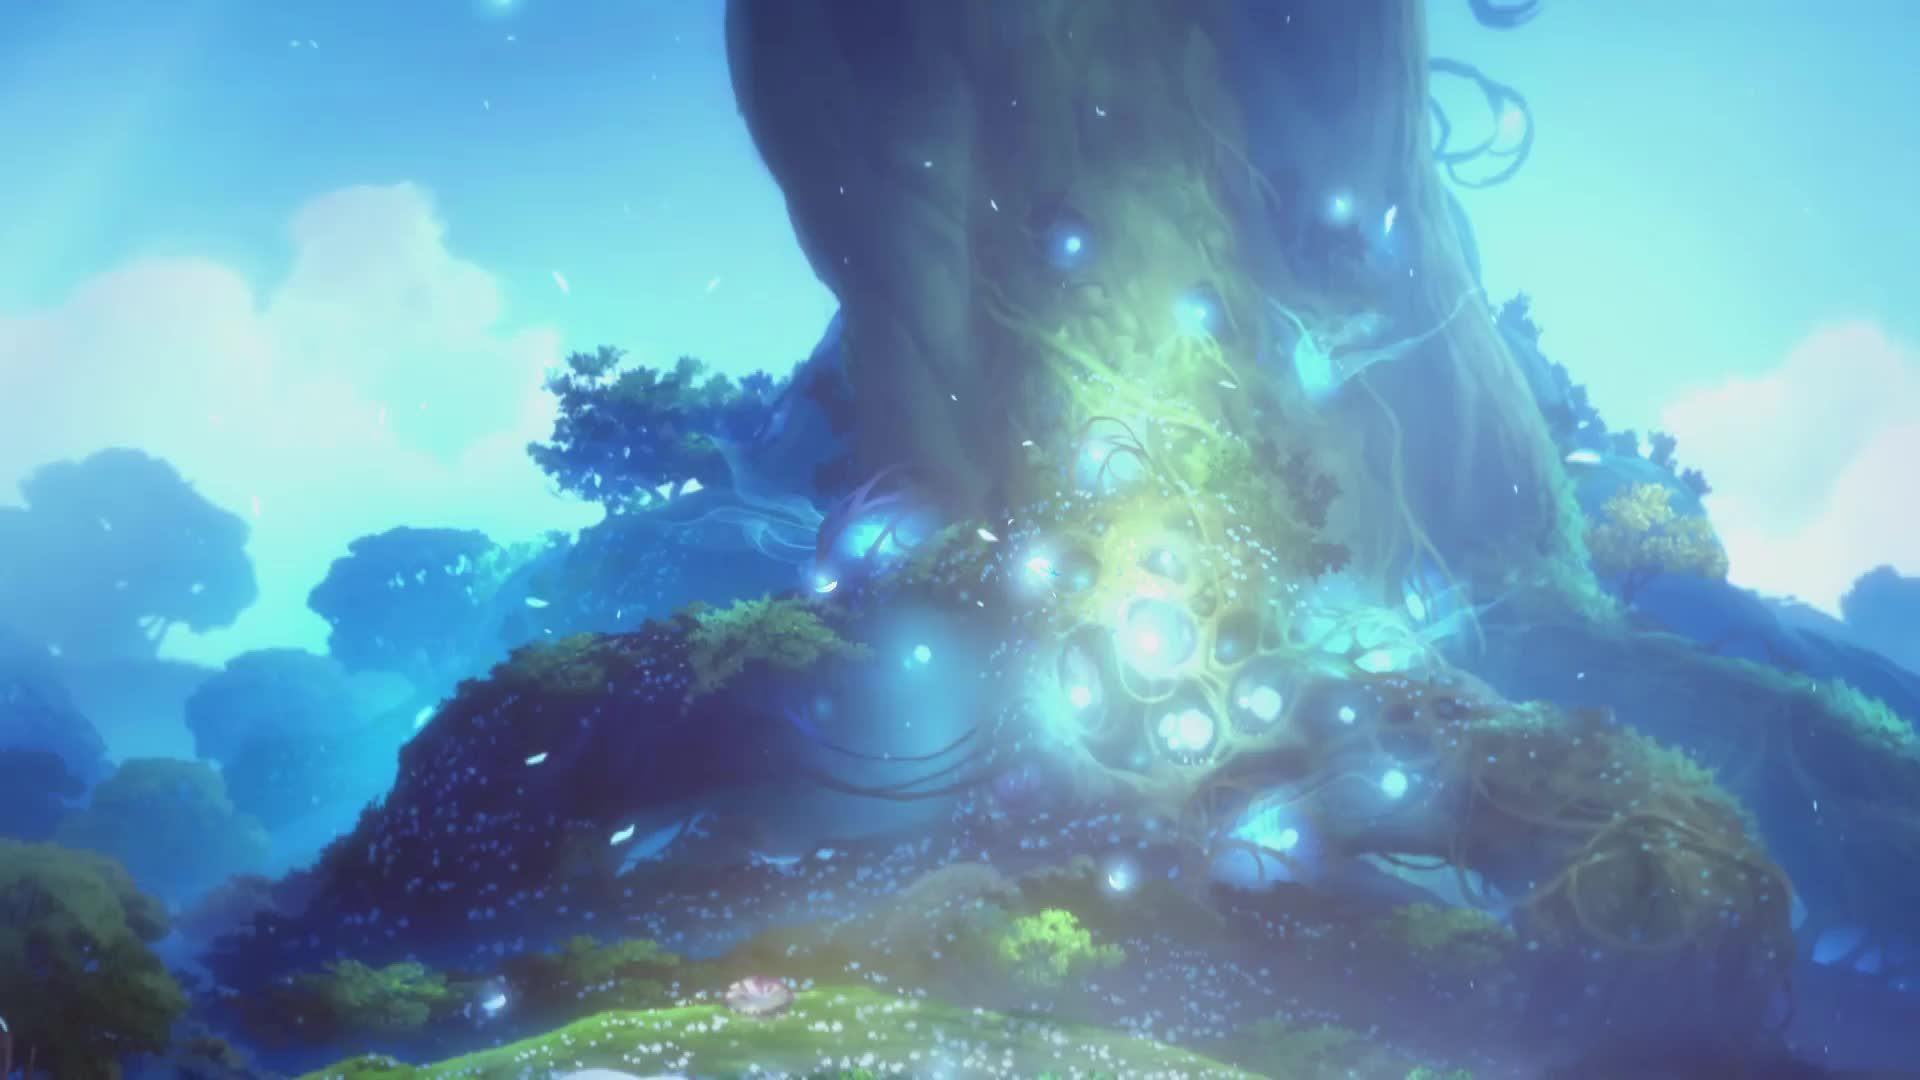 Ori And The Blind Forest Full Live Wallpaper Desktophut Gaming Wallpapers Anime Scenery Live Wallpapers